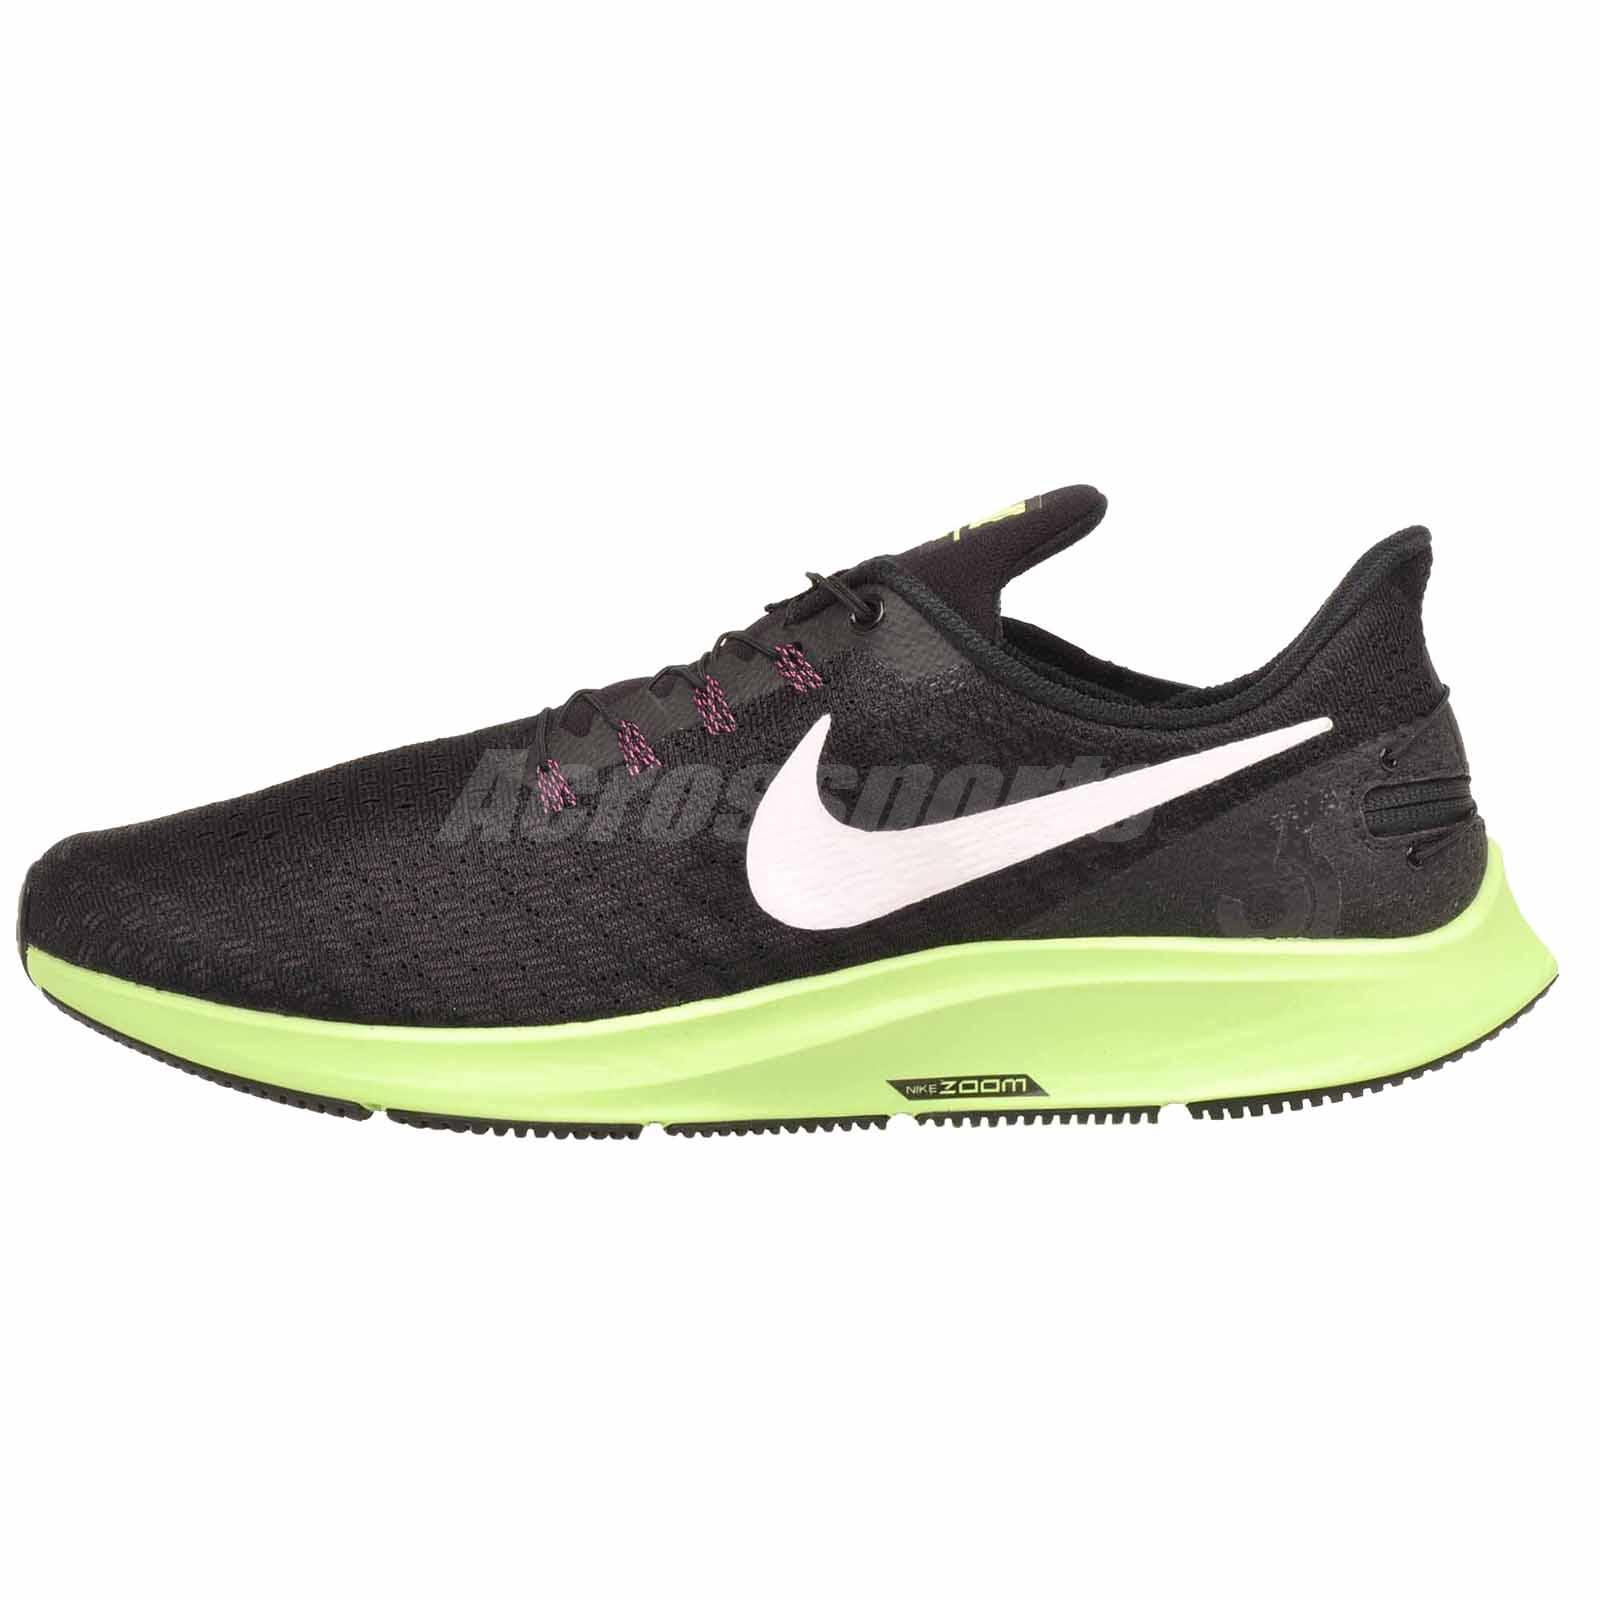 more photos f8d3f 7155f Details about Nike Air Zoom Pegasus 35 Flyease Running Mens Shoes NWOB  Black AV2312-016